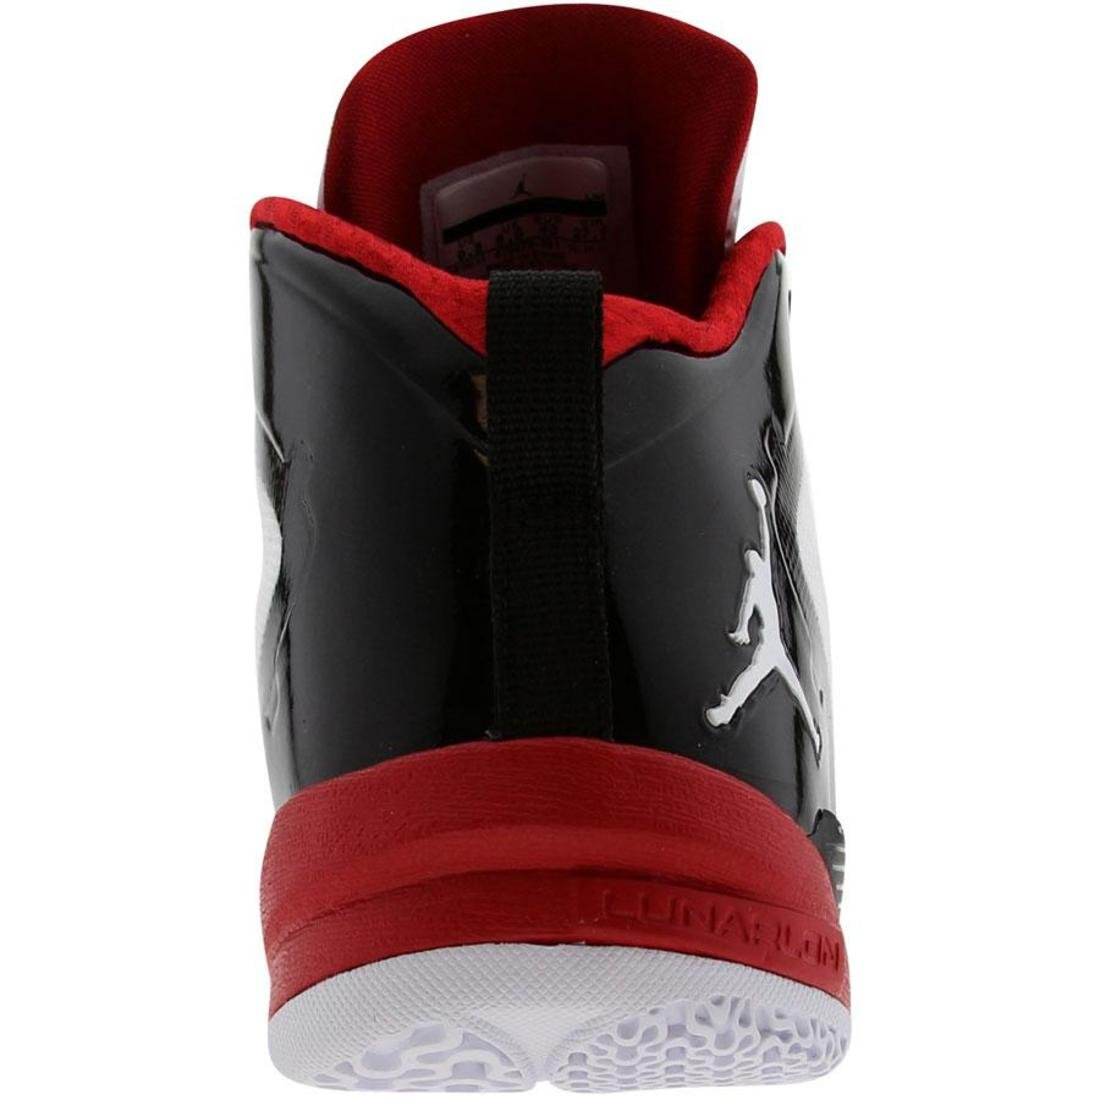 size 40 f42c4 9ef32 Amazon.com   Nike Men s Jordan Fly Wade 2 Basketball Shoe White Black  Varsity  Red   Basketball